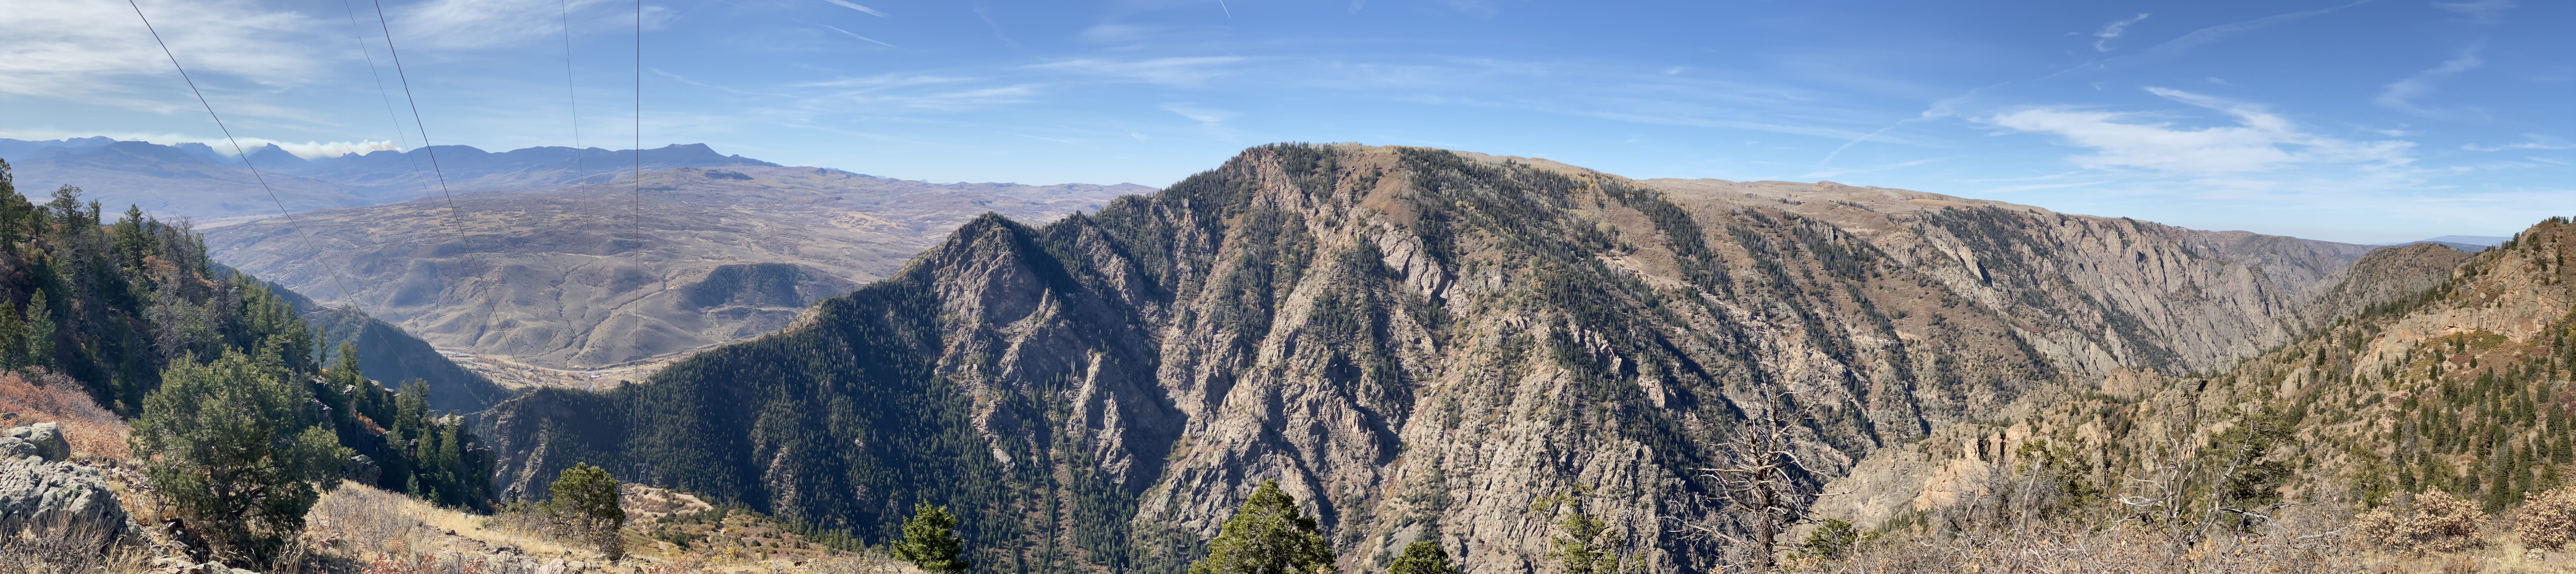 Panorama of Black Canyon from the Hermit's Rest overlook.